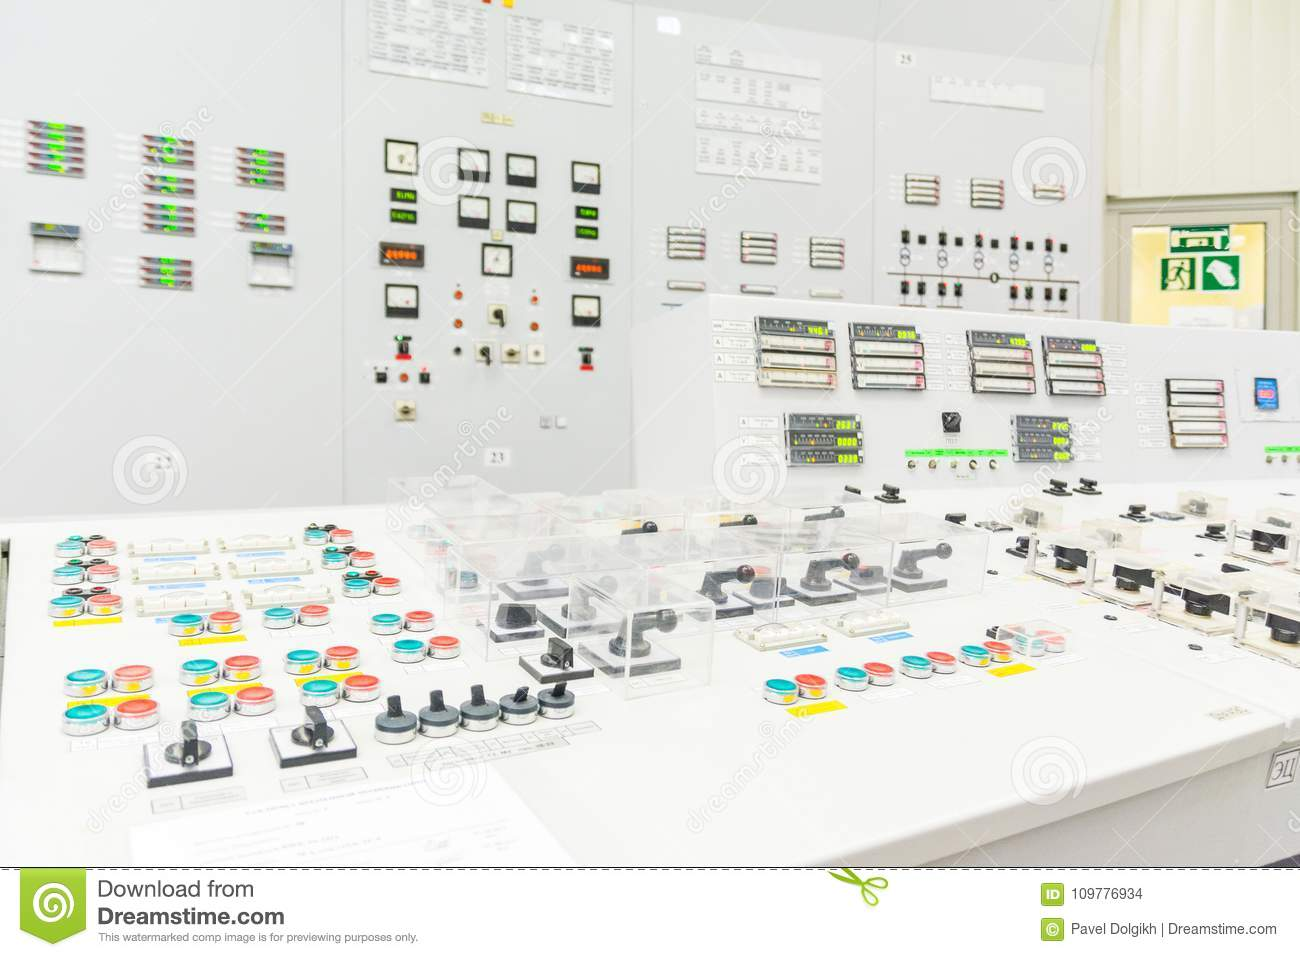 Block reactor control board of nuclear power plant